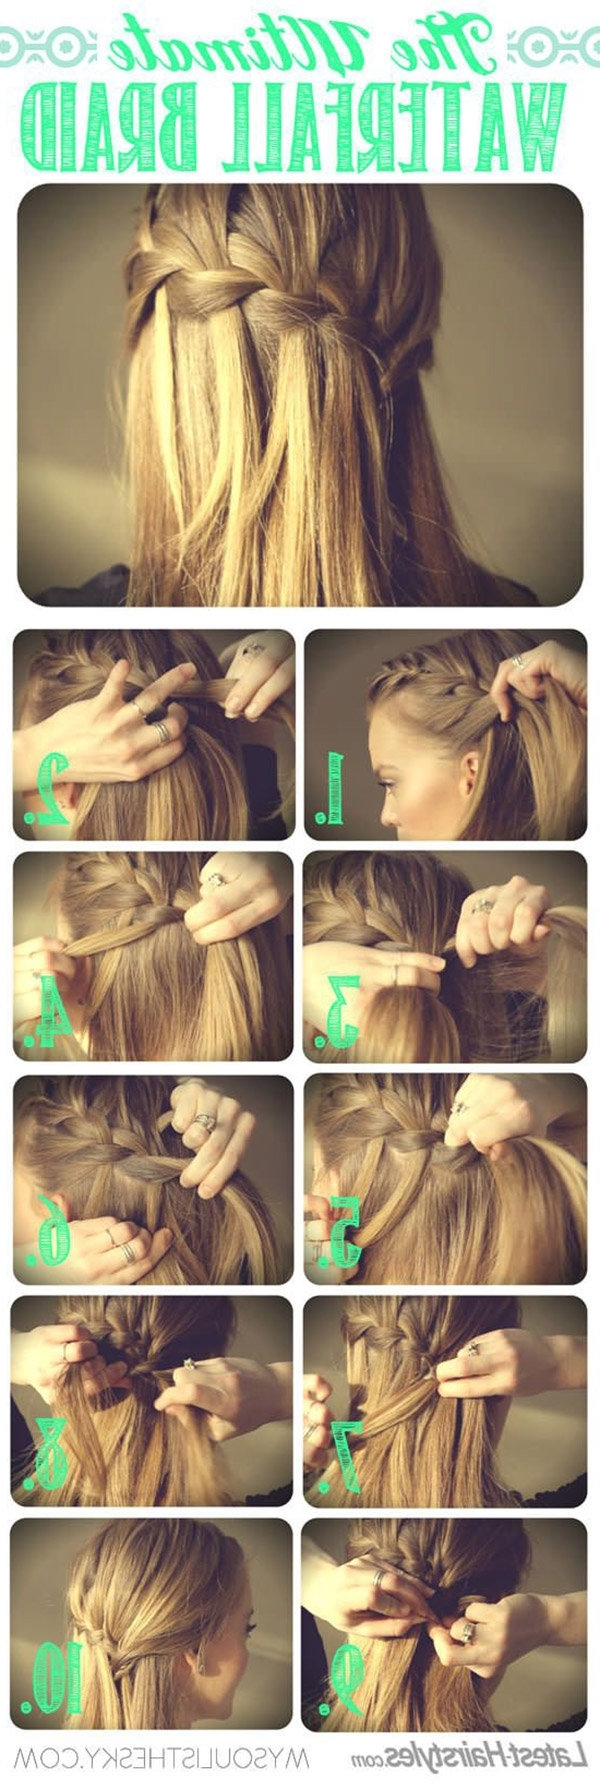 10 Beautiful Diy Hairstyles To Wear To A Wedding Bridalguide Intended For Most Popular Diy Wedding Hairstyles For Long Hair (View 5 of 15)